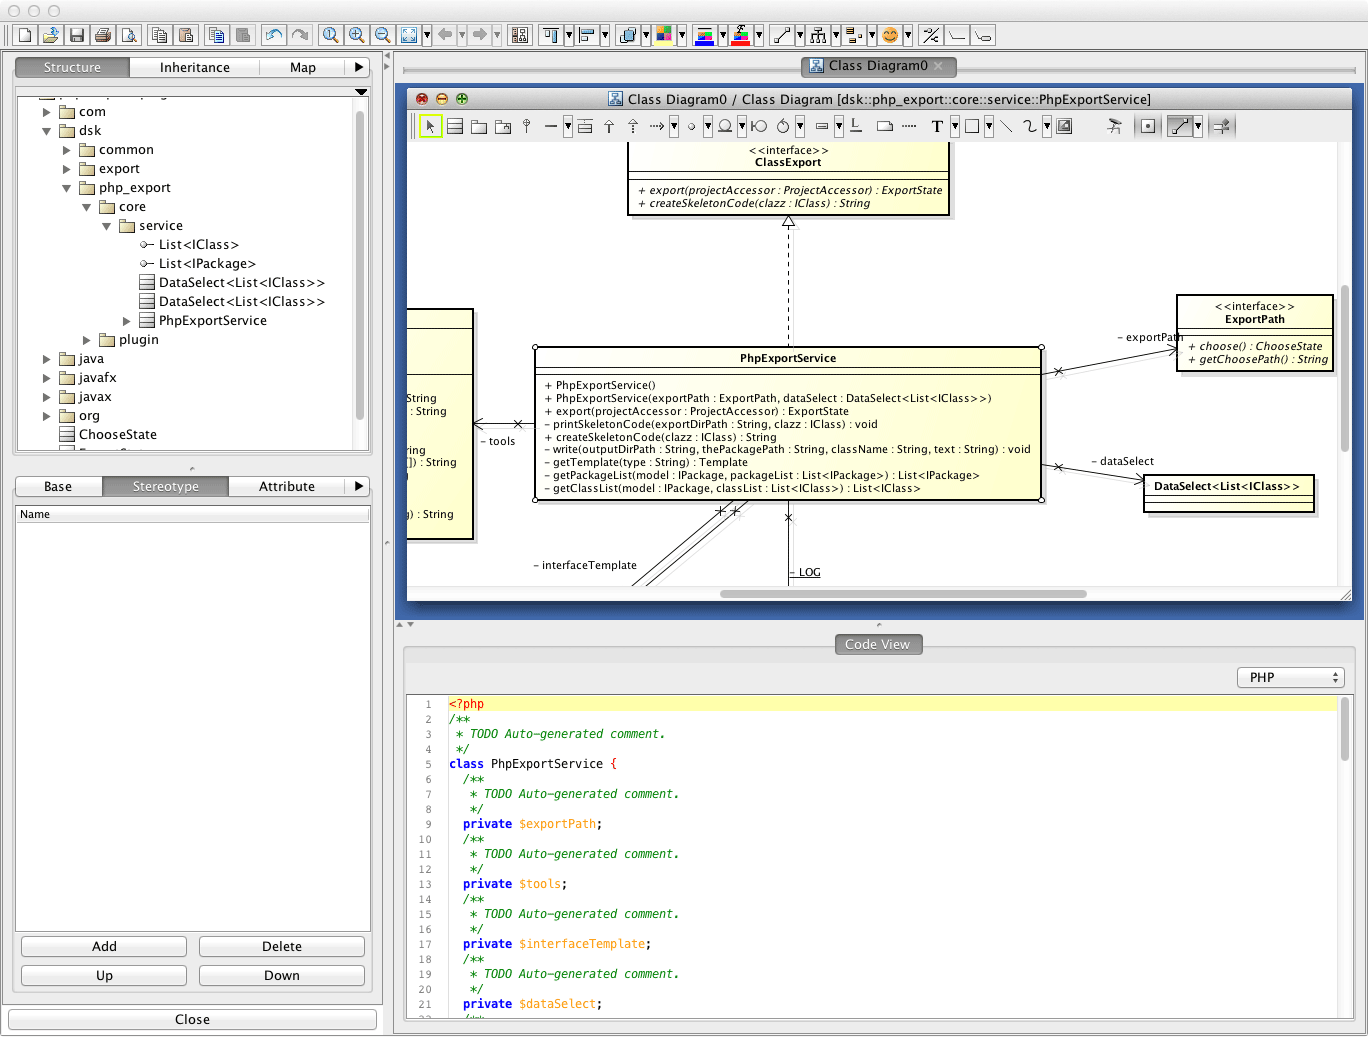 codeview